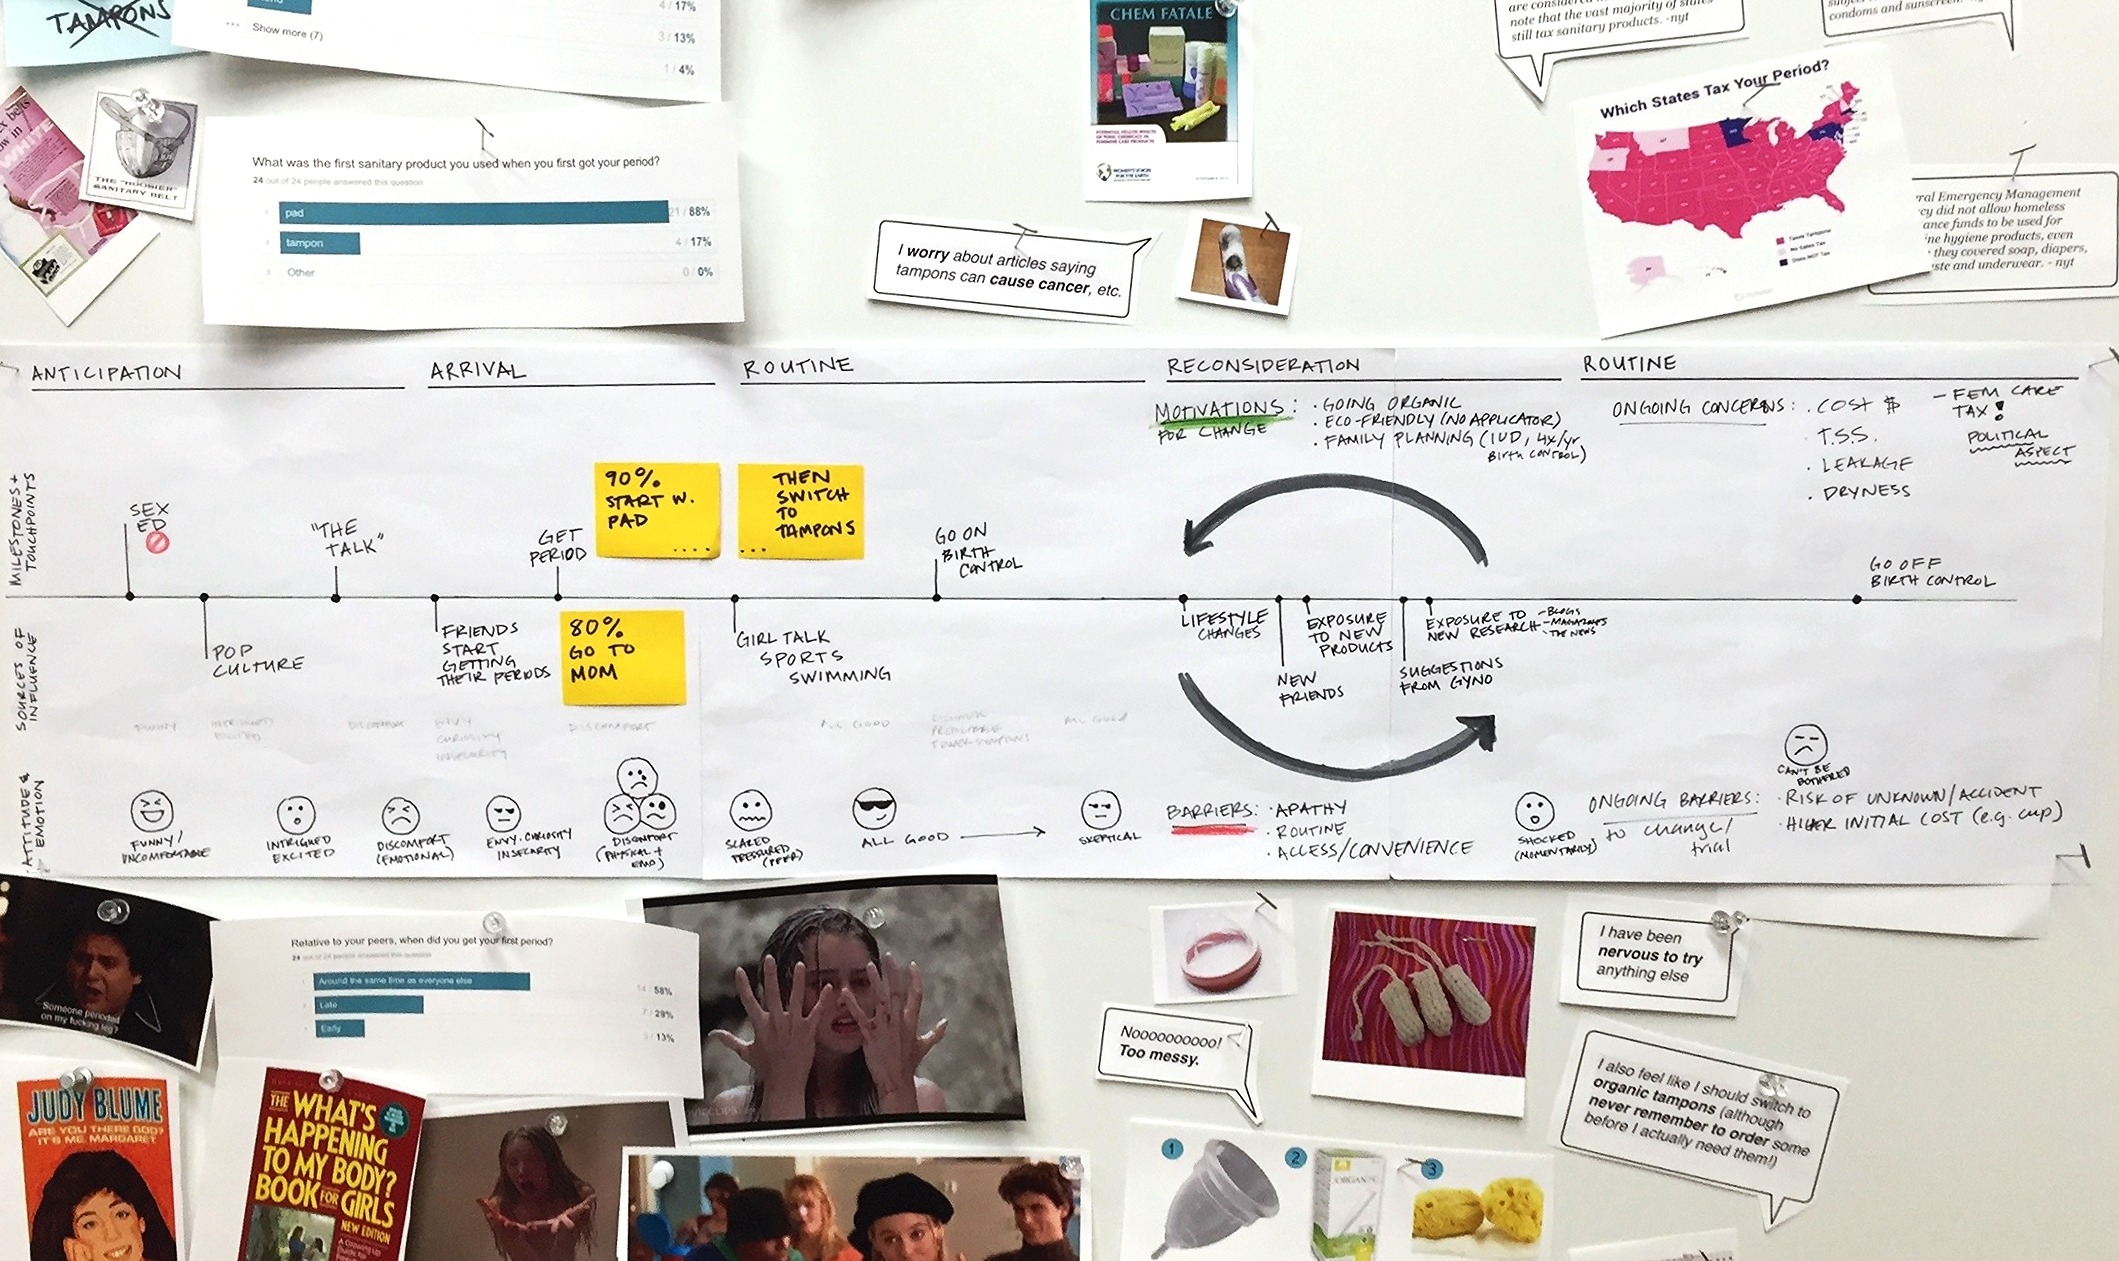 Journey Mapping: Milestones & Touchpoints, Sources of Influence, Attitudes & Emotions